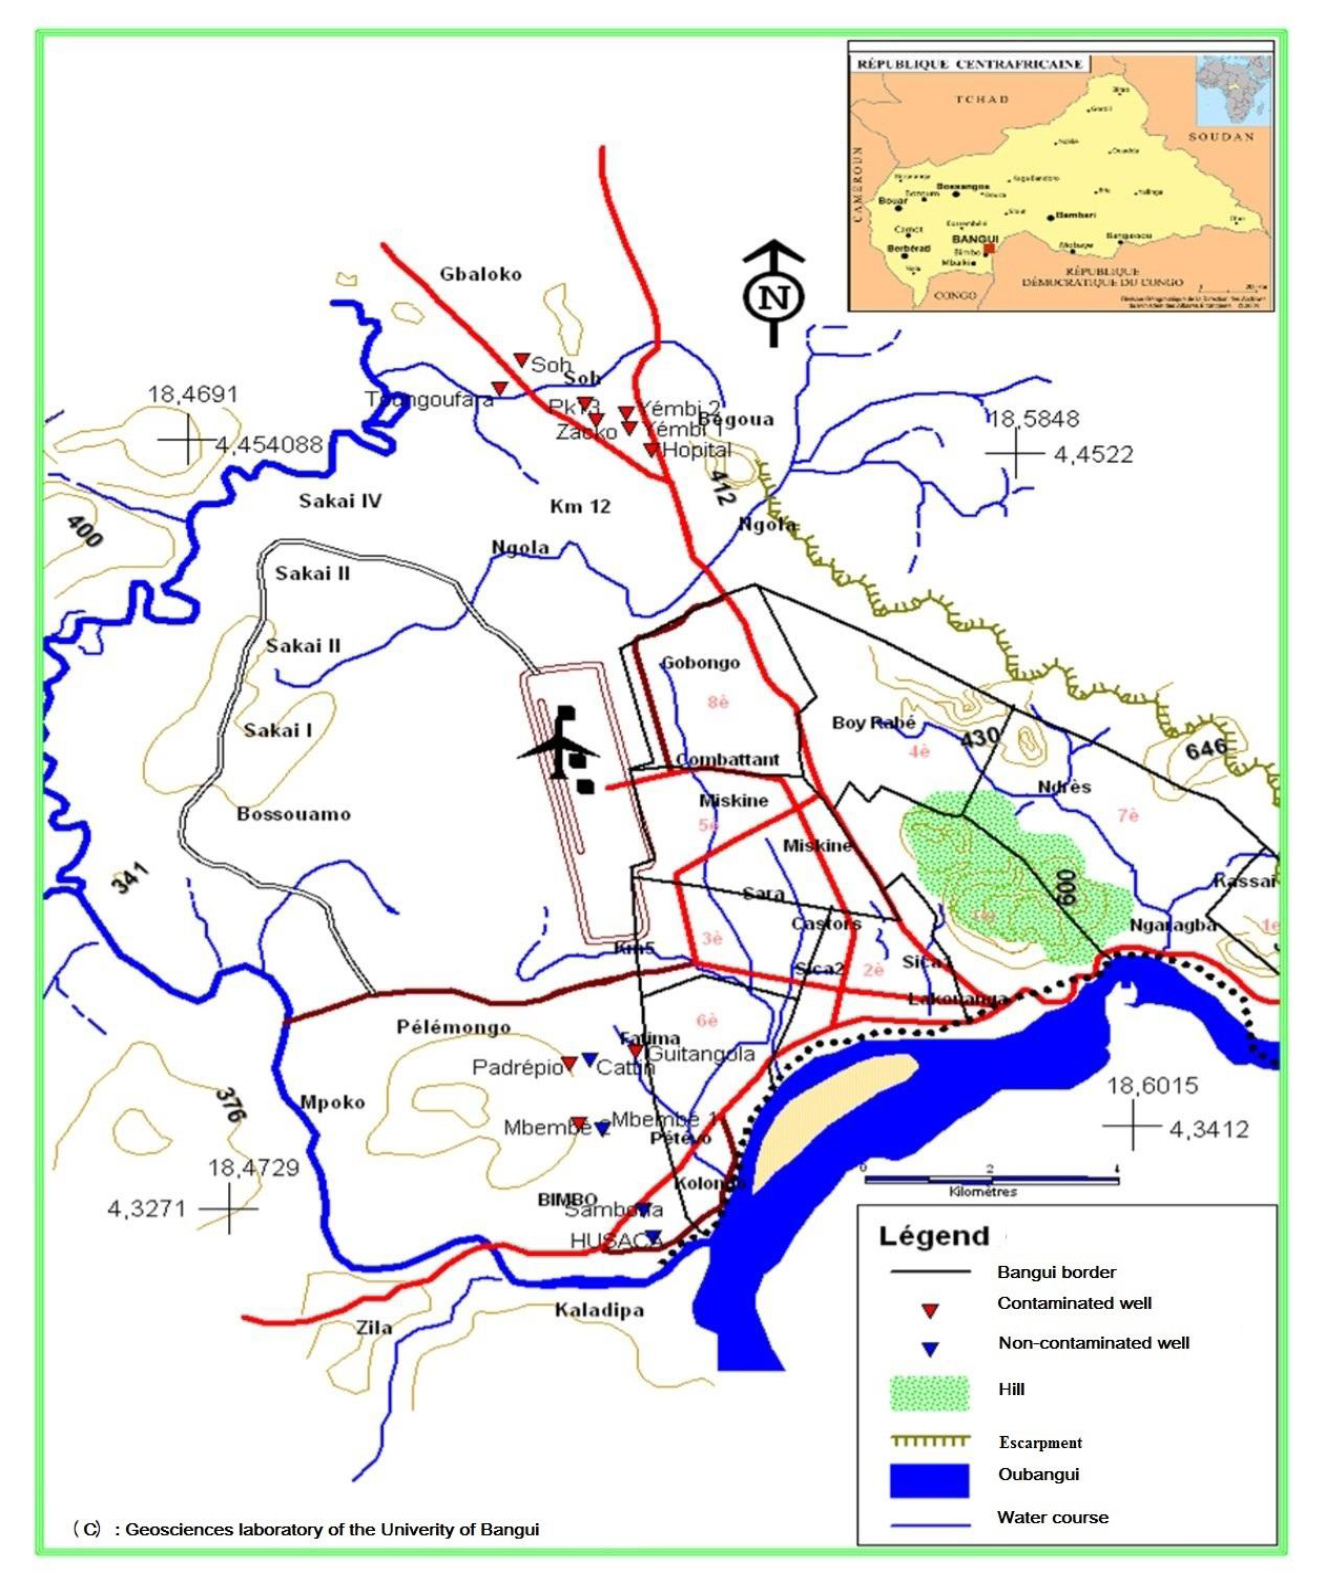 Sanitary mapping of well waters in the commune of Bimbo in the